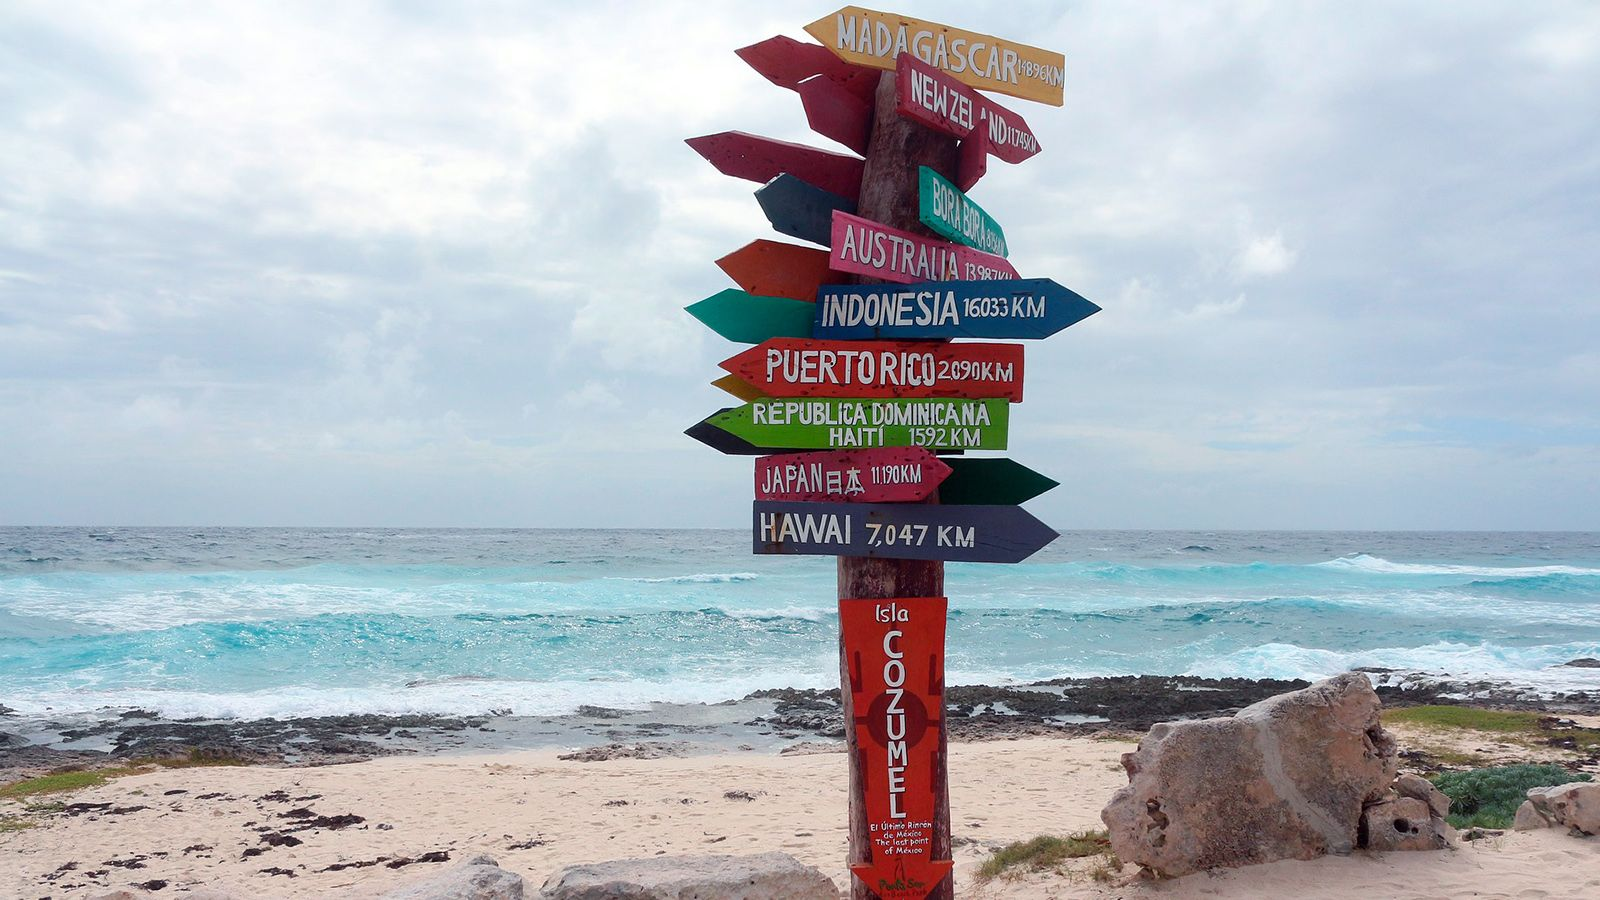 Main attractions in Cozumel, Mexico